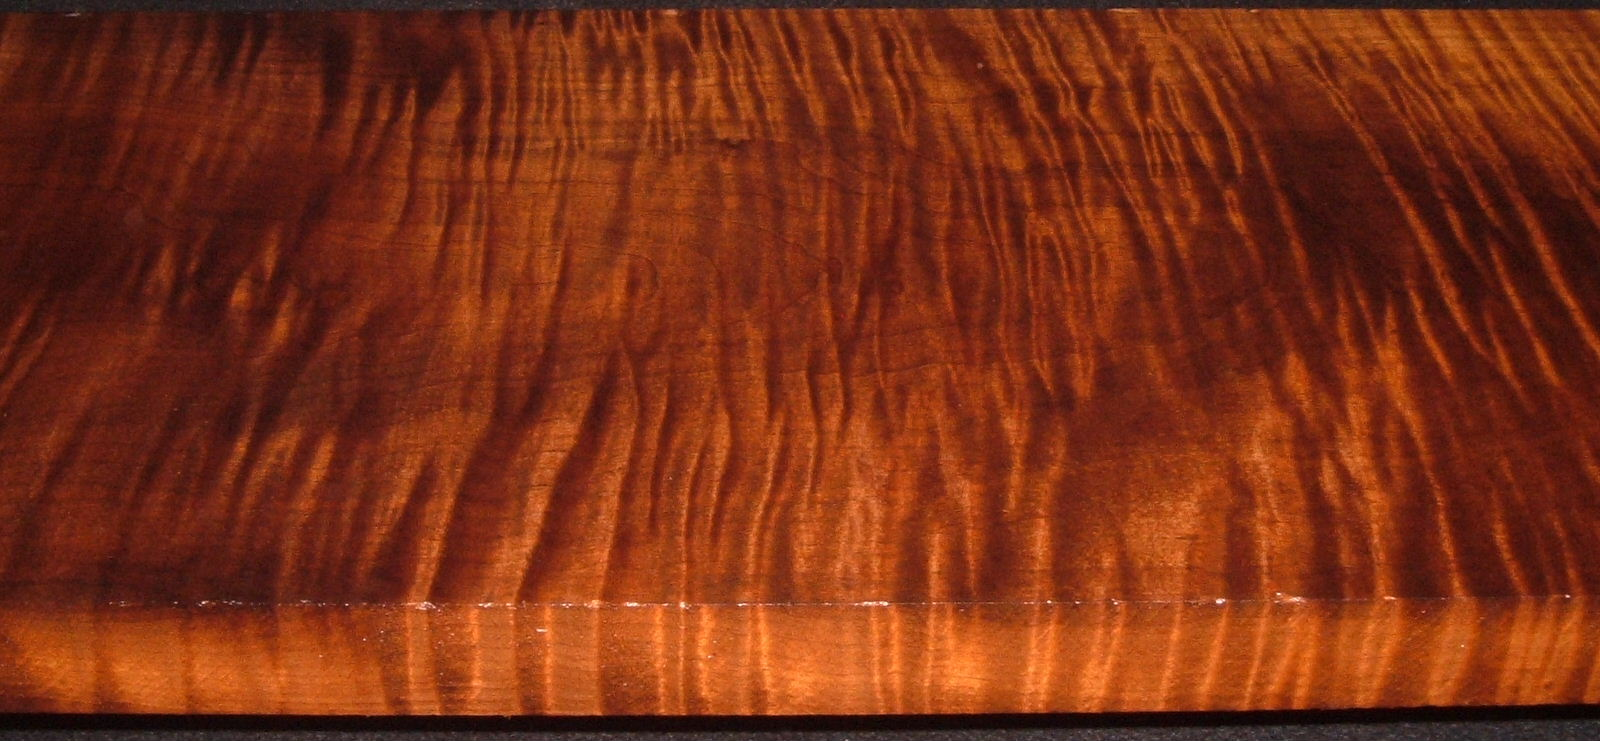 RM2006-192L, 1-7/16x11-1/4x53, Roasted Curly Maple